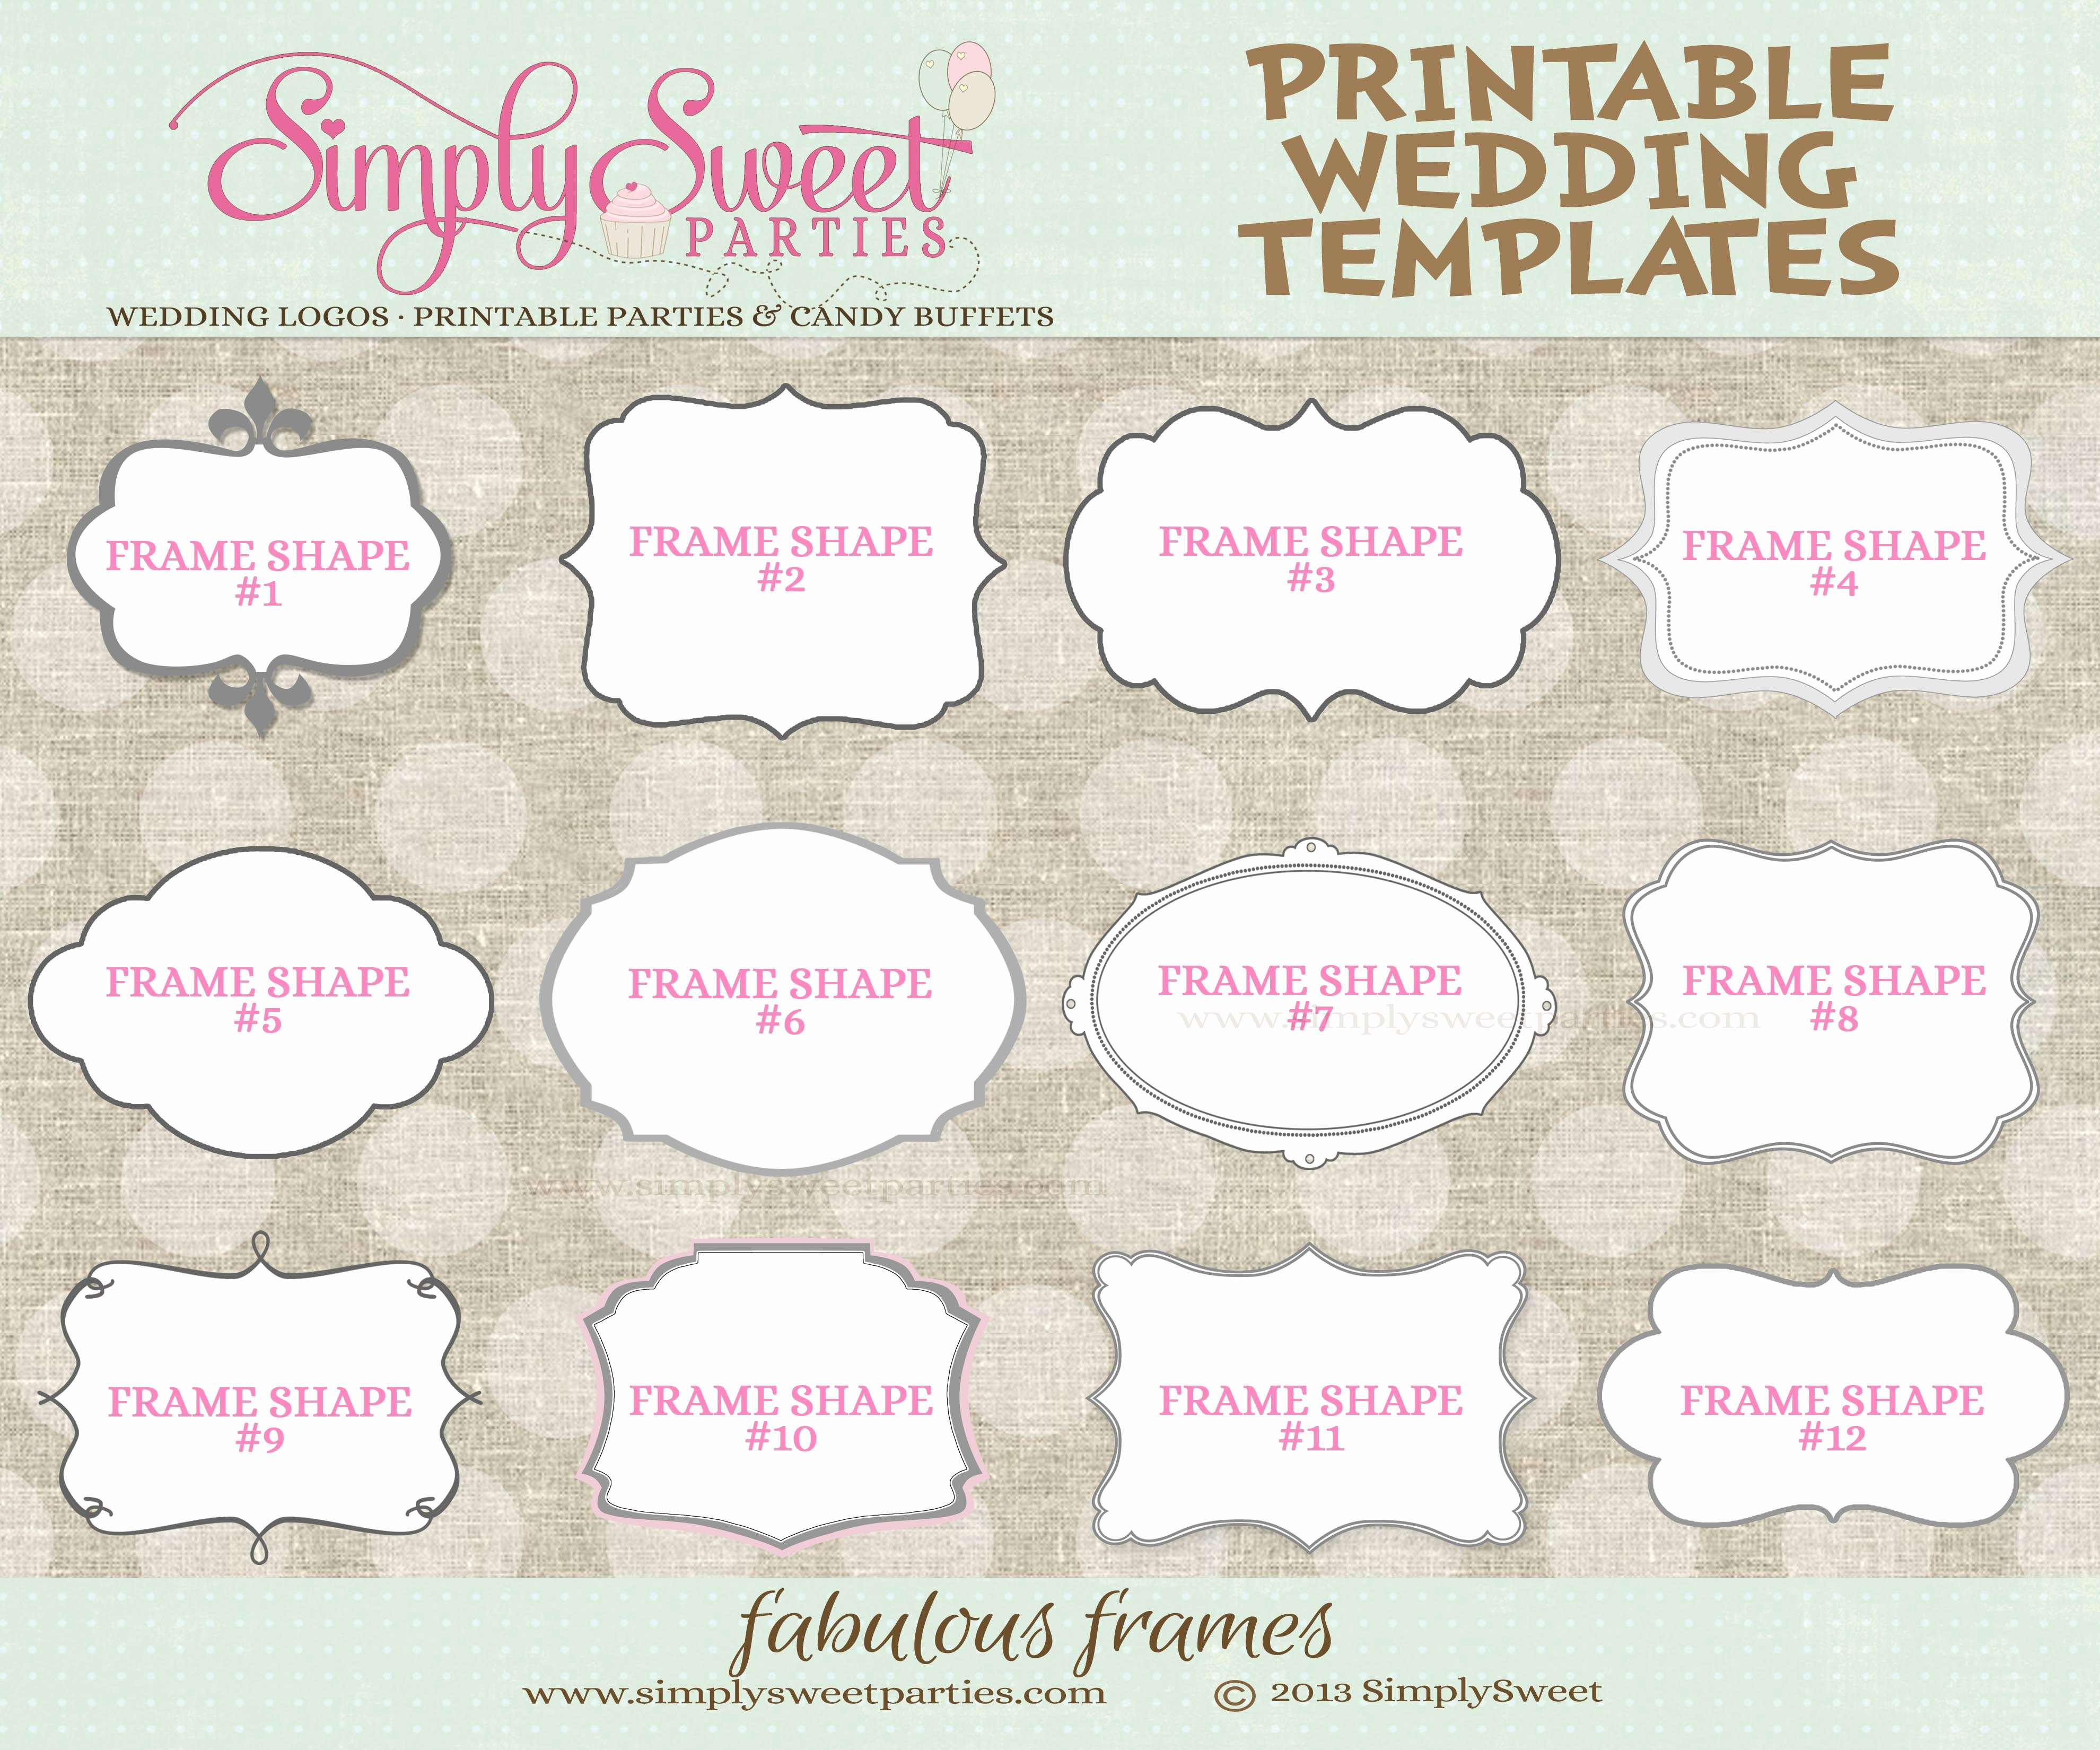 Wedding Favor Tags Template Inspirational 9 Best Of Printable Wedding Templates Favor Free